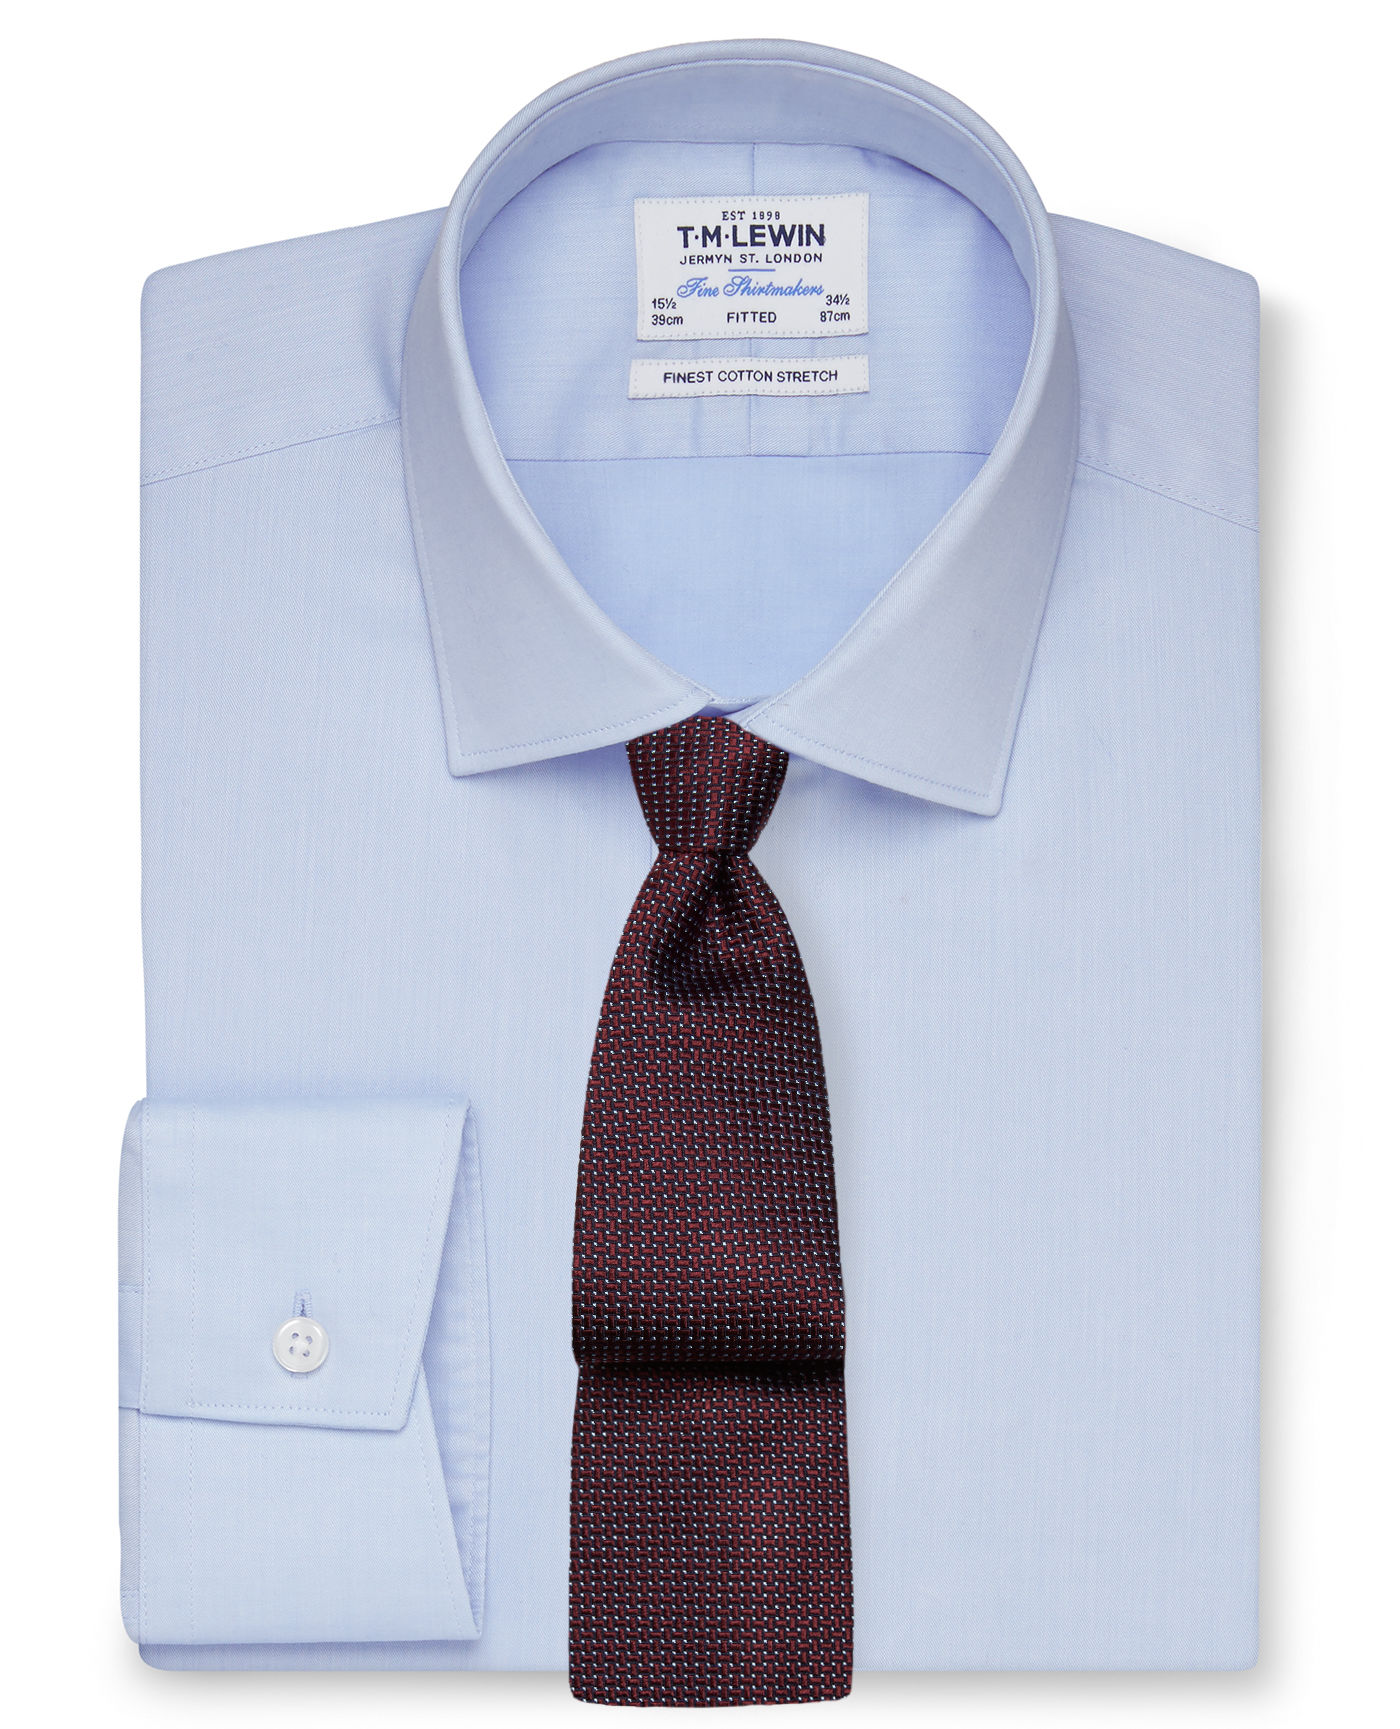 T.M.Lewin Stretch Cotton Fitted Blue Shirt - Button Cuff